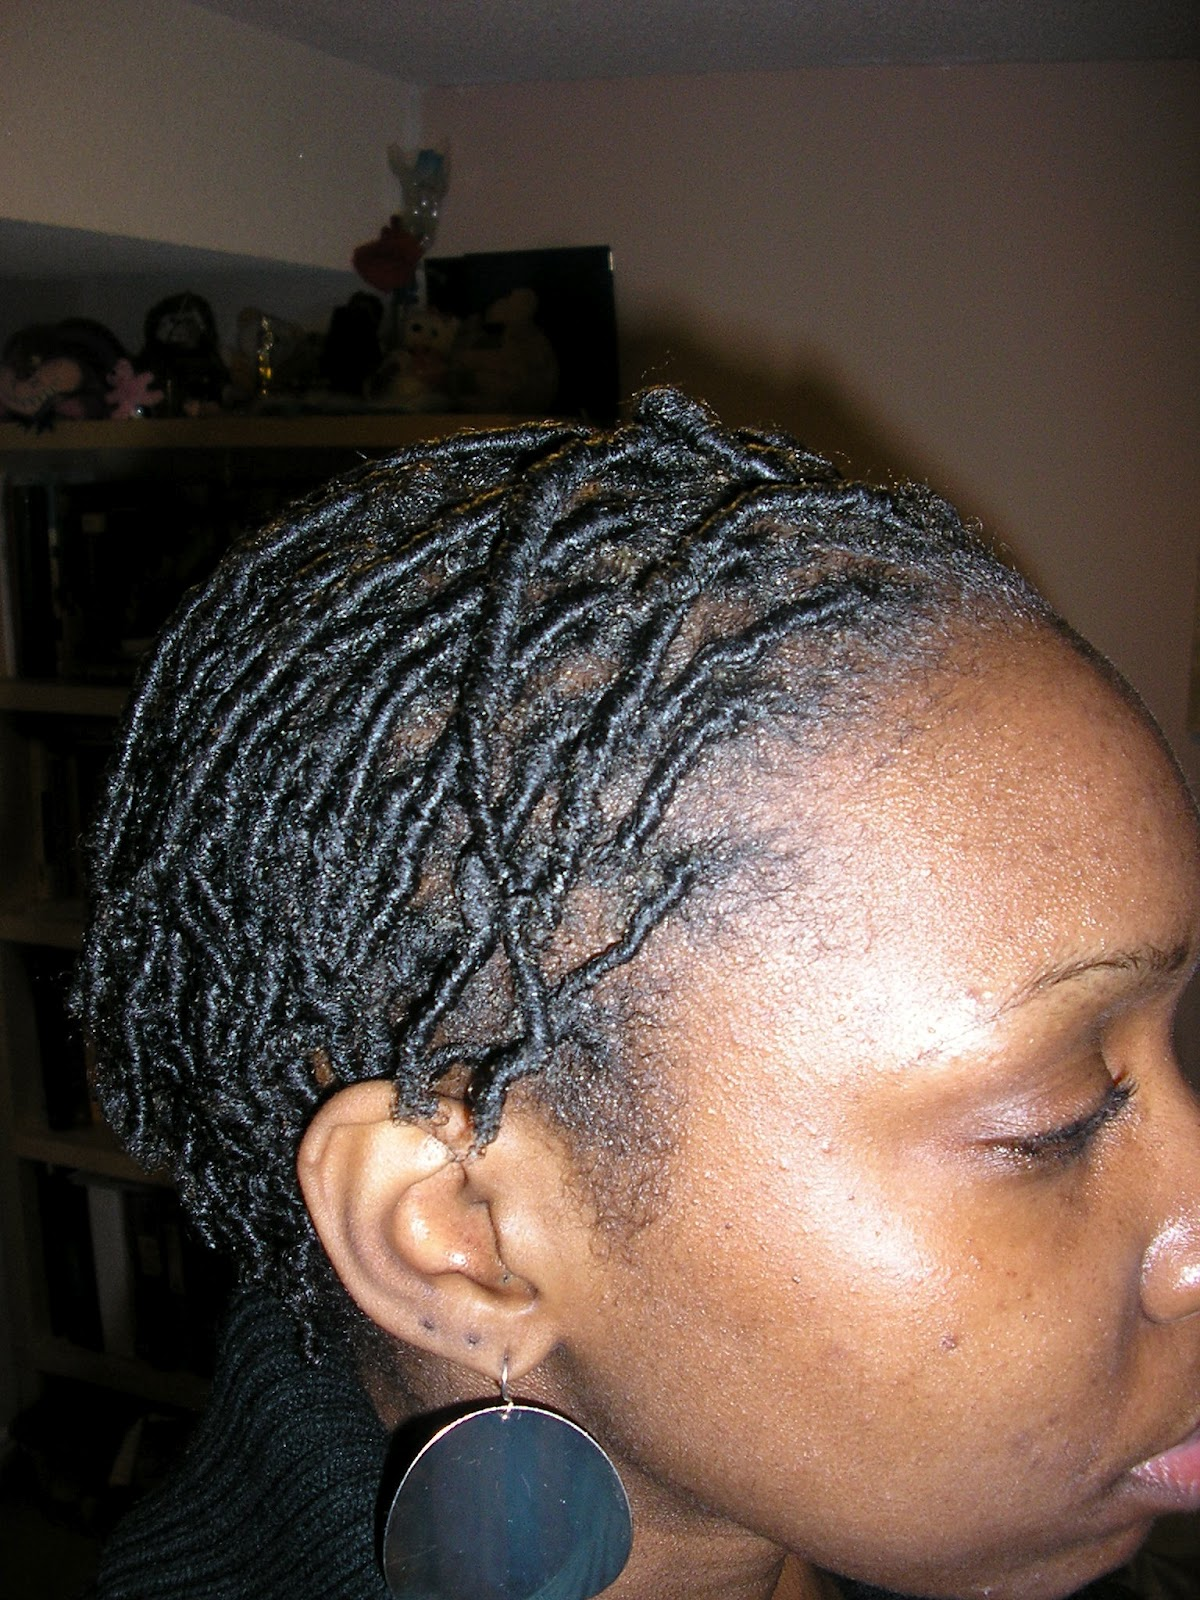 Astounding The Quotdreadedquot Decision How Should I Start My Locks Nubiansouls Hairstyle Inspiration Daily Dogsangcom